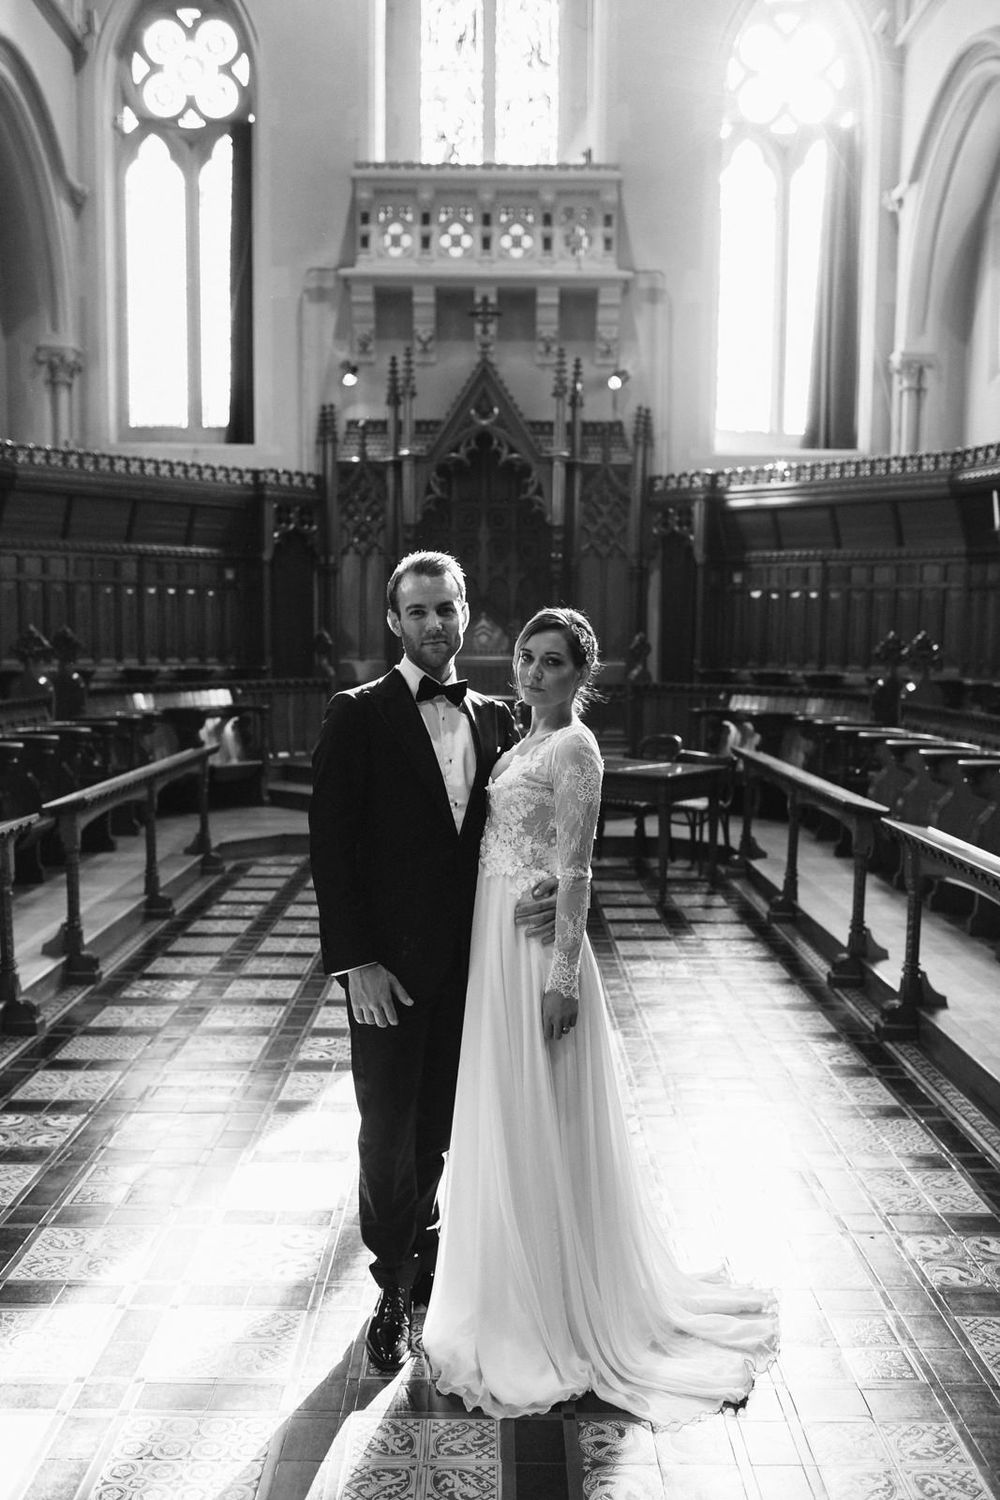 Stanbrooke Abbey Wedding Photographer-322480.jpg